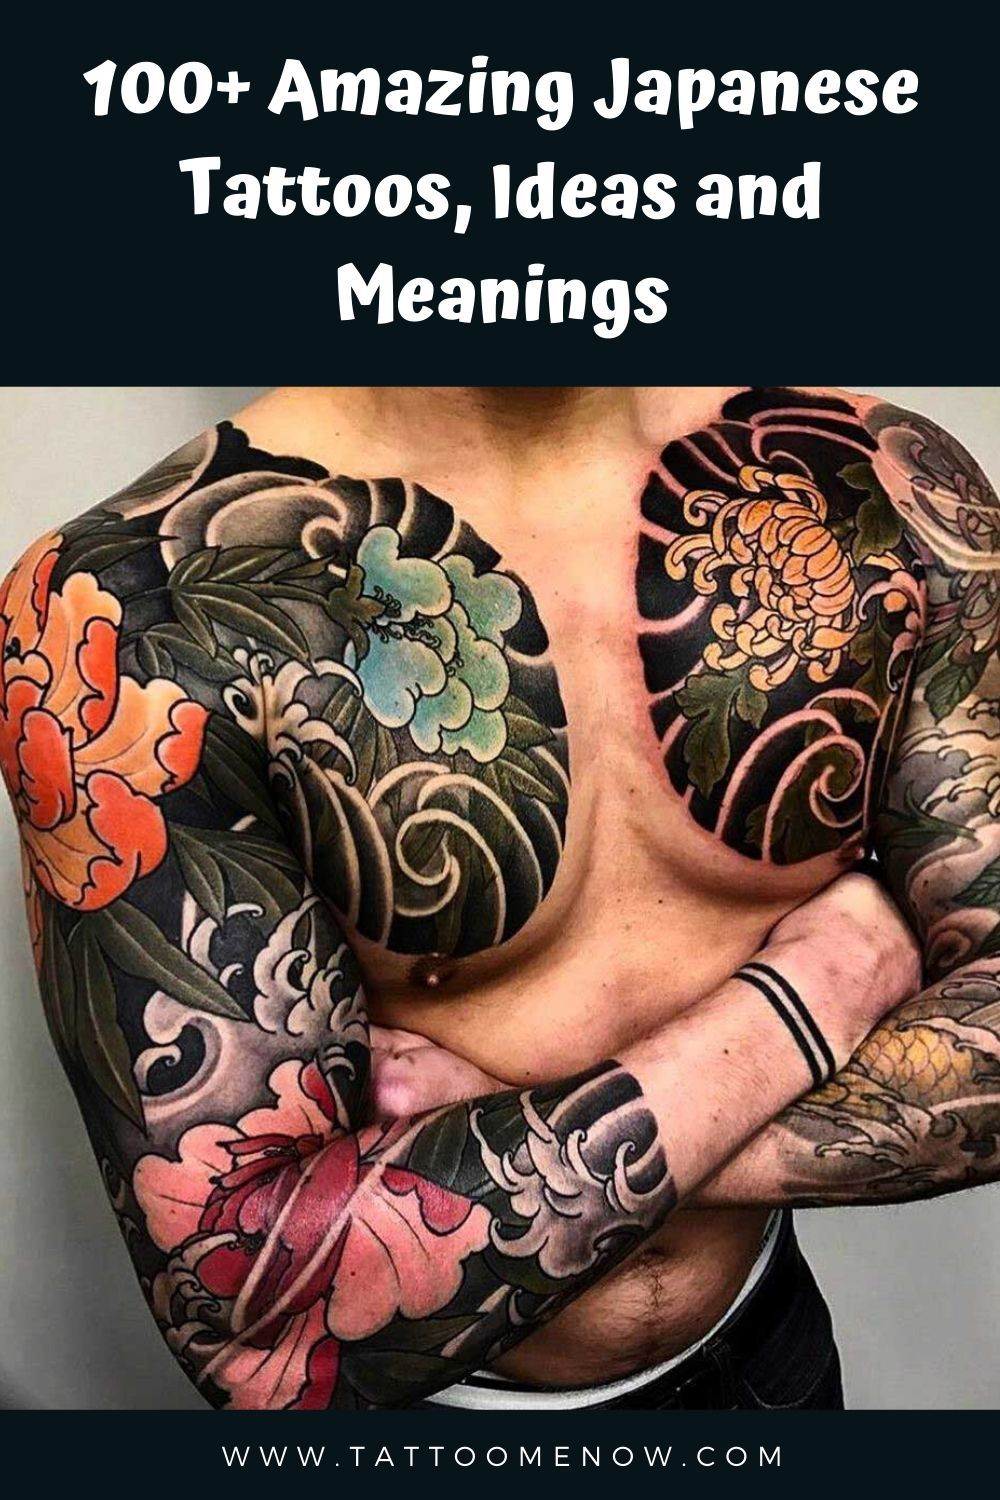 100+ Amazing Japanese Tattoos - Designs, Ideas and Meanings